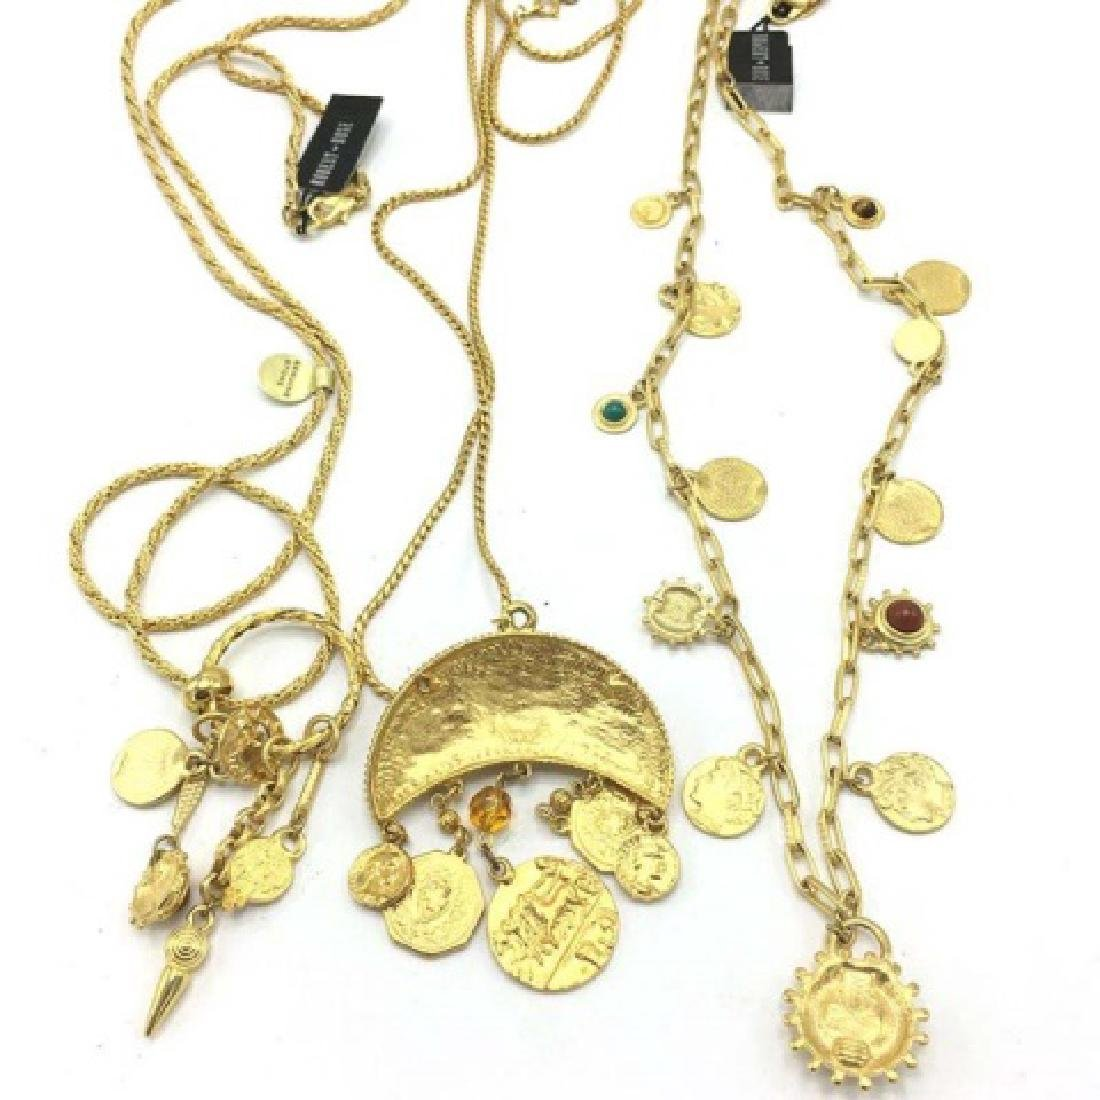 Vintage 1980s Costume Gold Roman Coin Necklaces - 2